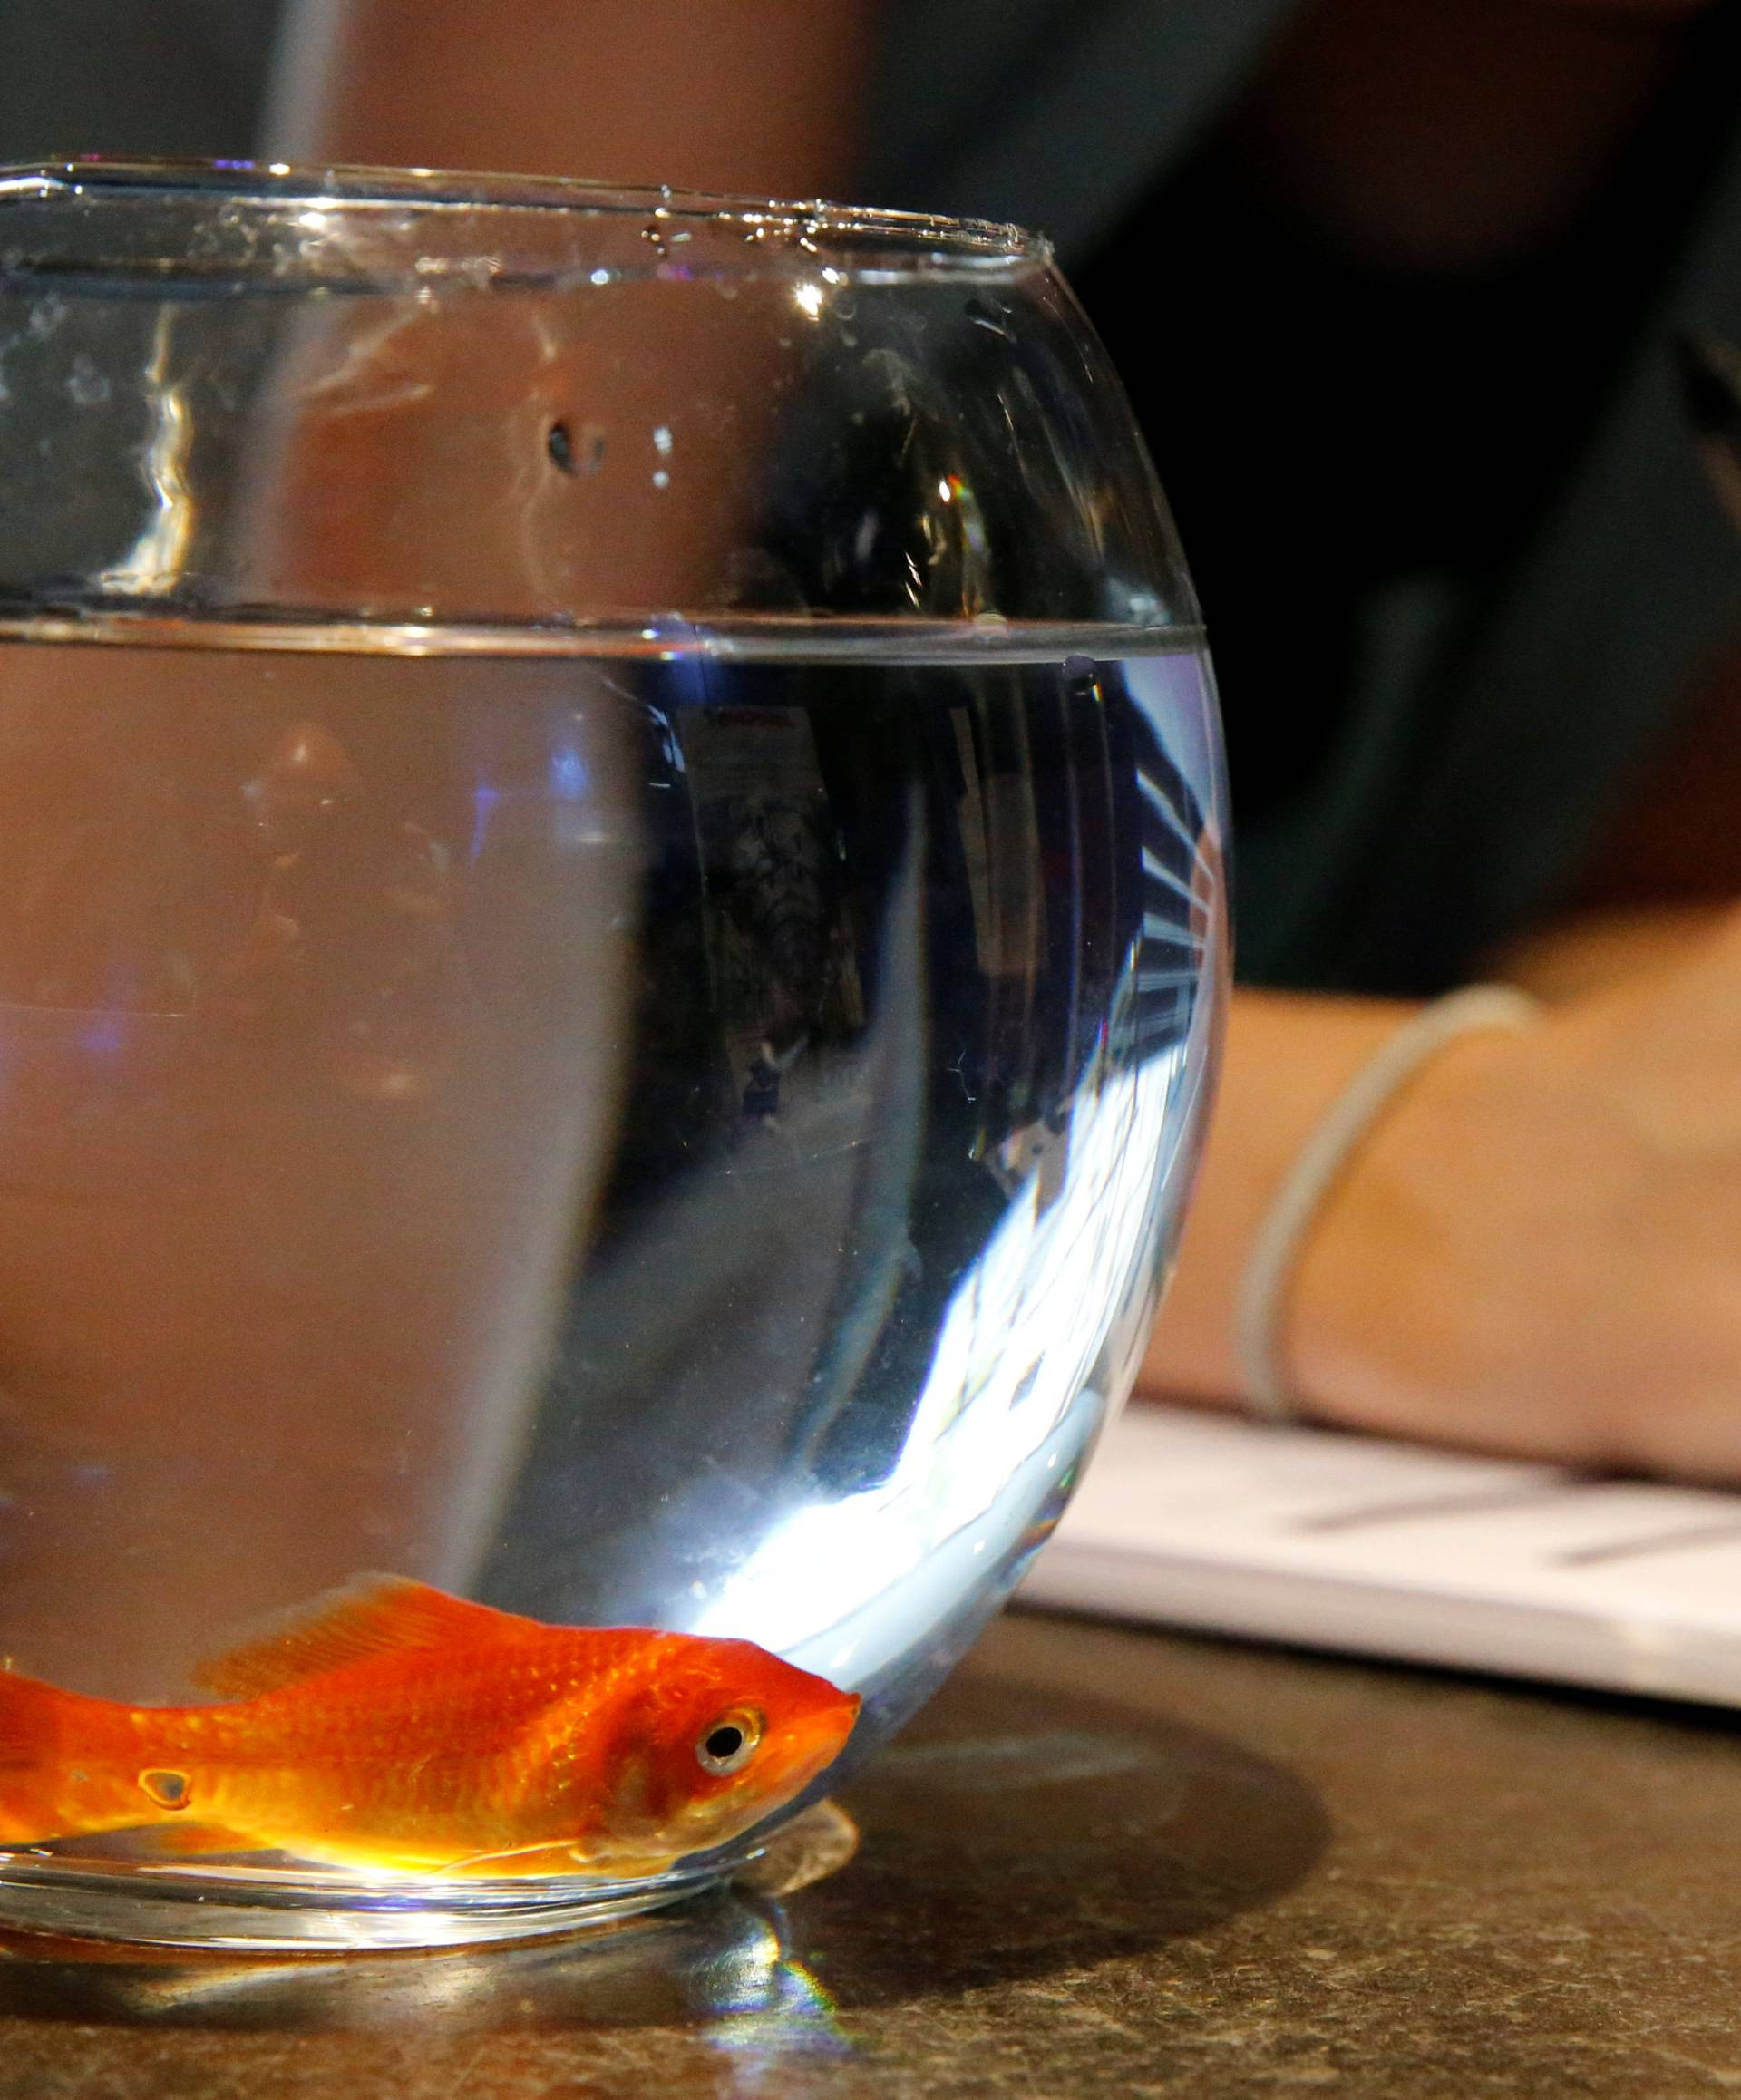 """Emie Le Fouest from Paris brings her goldfish named """"Luiz Pablo"""" to Paris aquarium as part of an operation launched to take care of hundreds of goldfish abandoned by French holiday-makers, in Paris"""